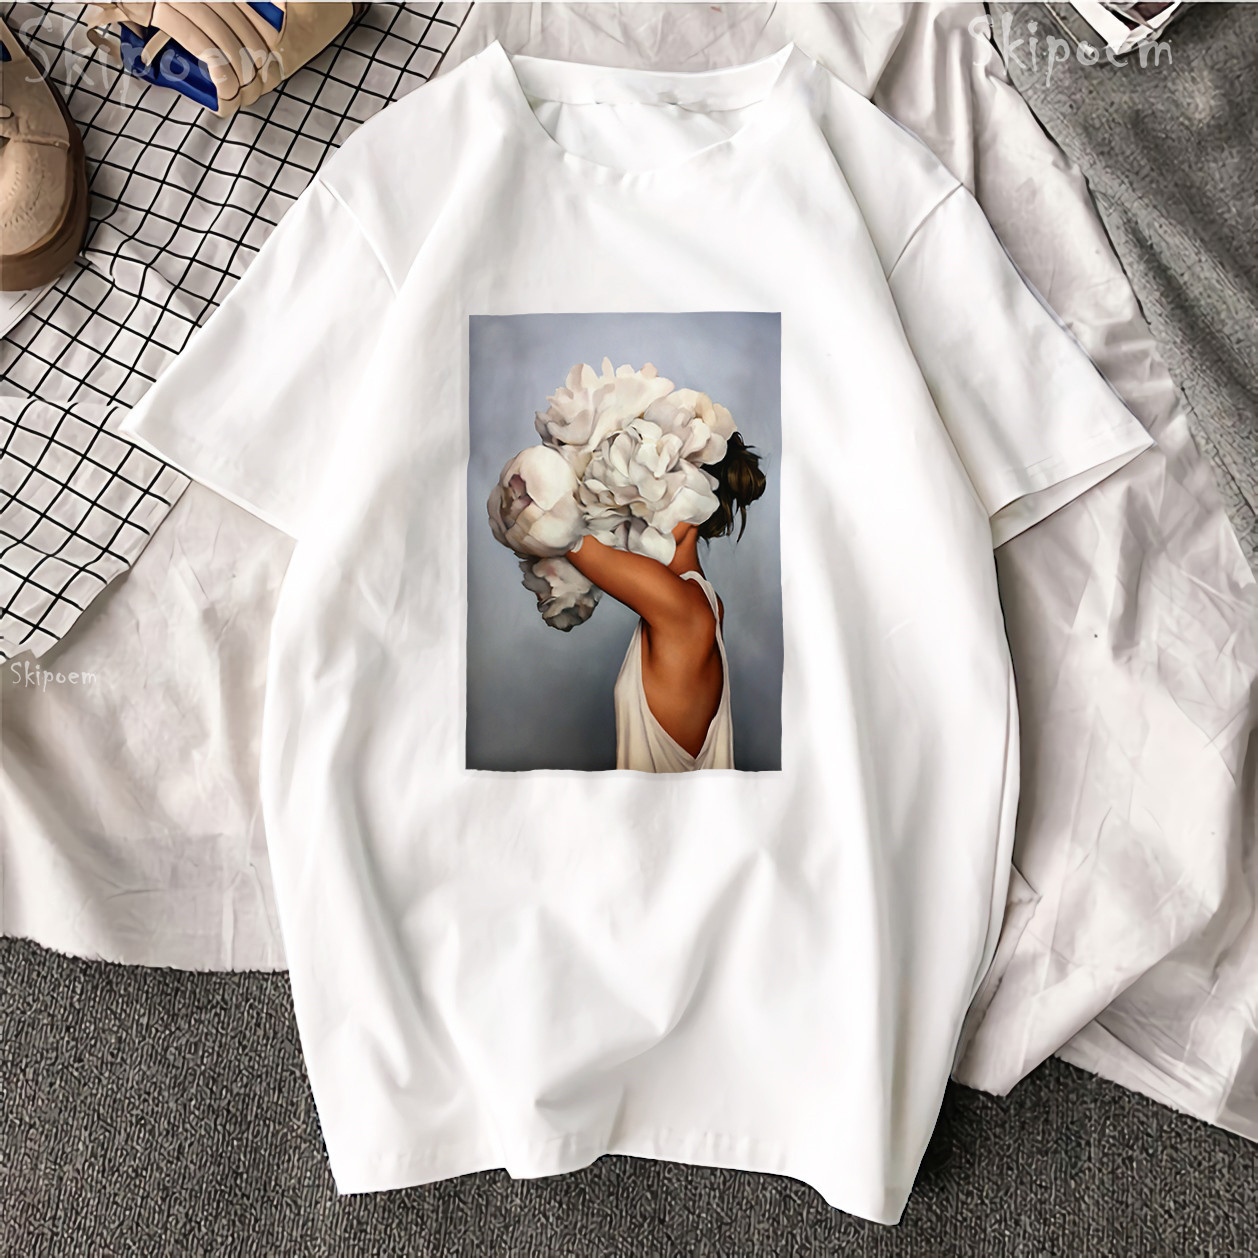 New Cotton Aesthetics T shirt Sexy Flowers Feather Printed Fashion Casual Couple T Shirt 1